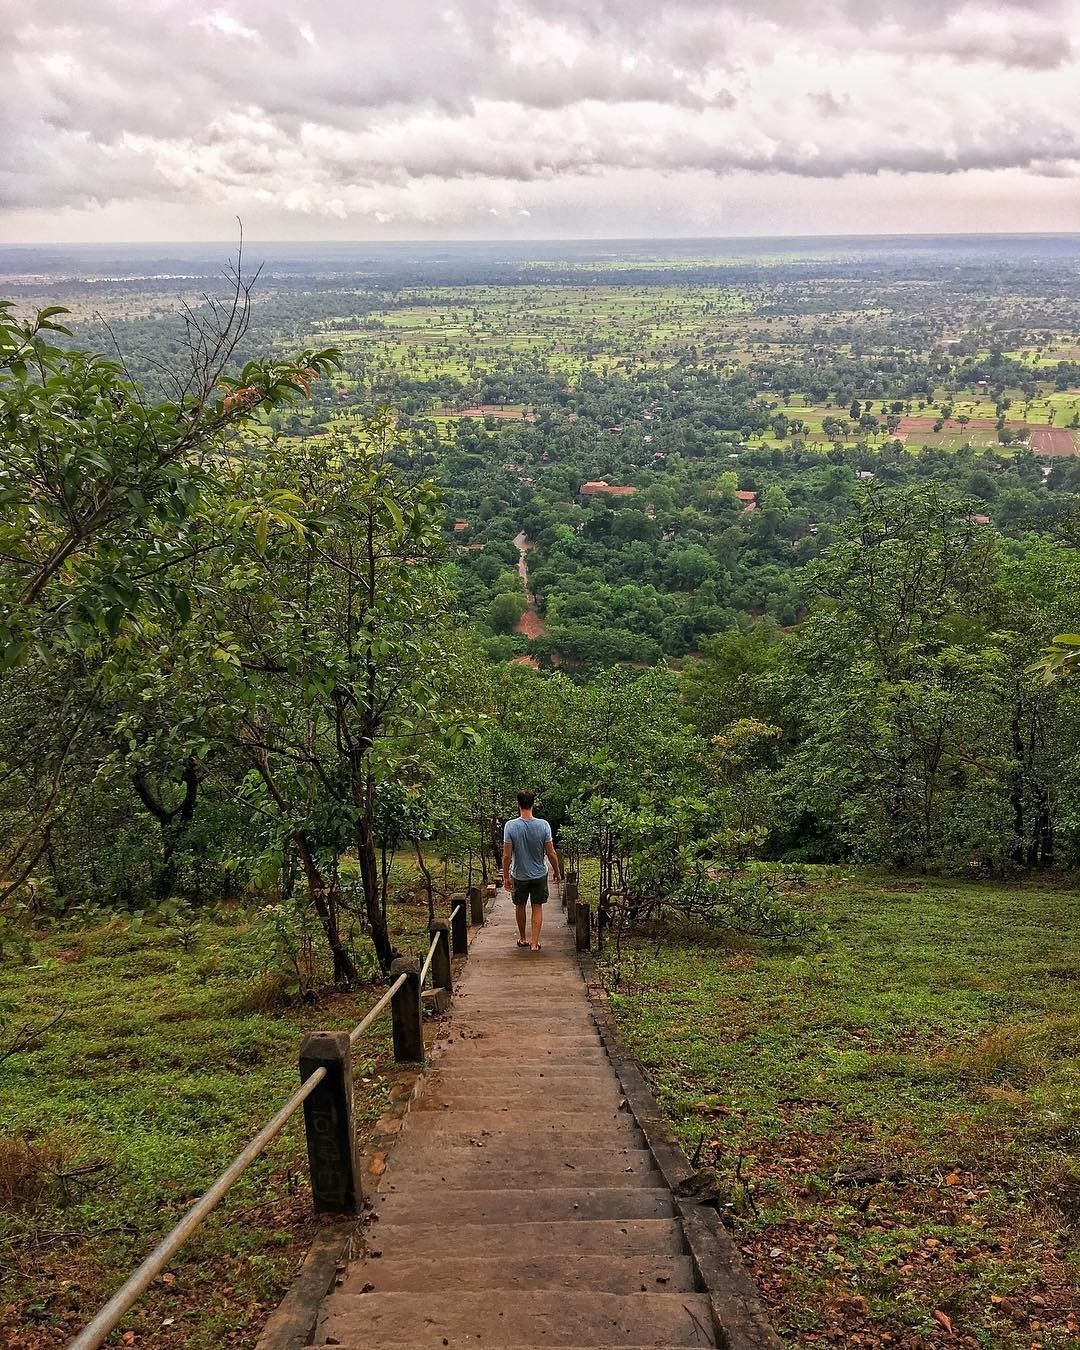 "Siemreap.net on Instagram: ""Phnom Bok is one of the most exciting, less visited places in Angkor Archaeological Park. 🏔️ With 633 steps to reach the summit, Phnom Bok…"""